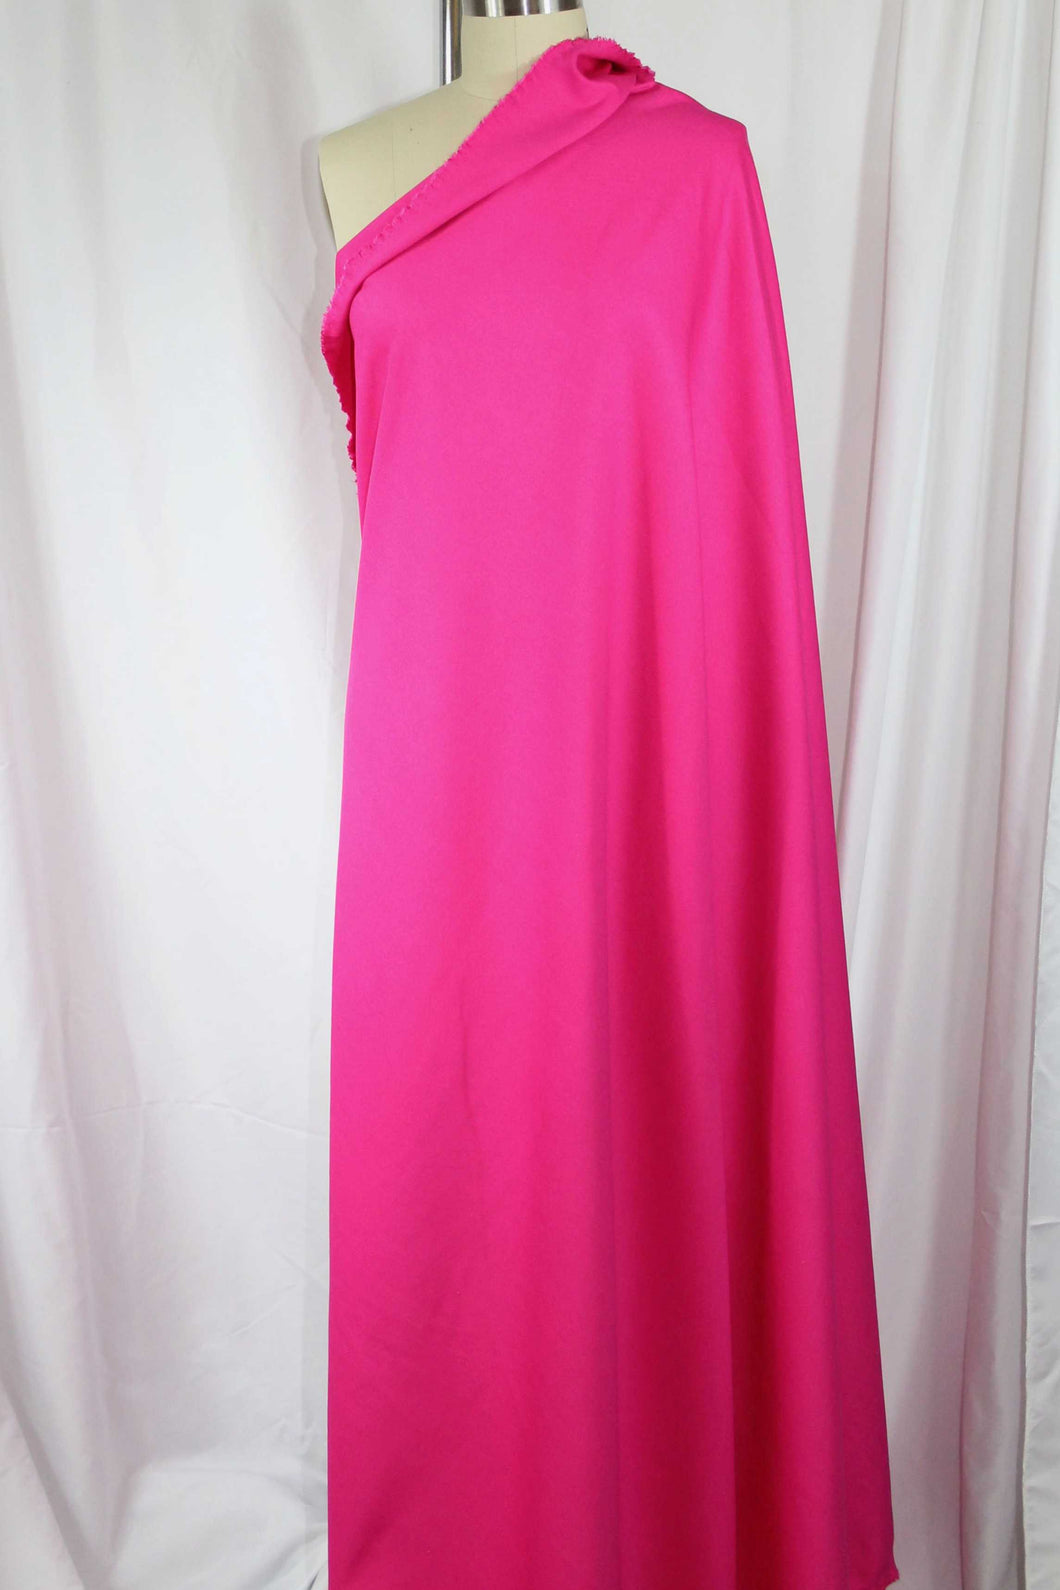 Designer Rayon Double Knit - Bright Pink